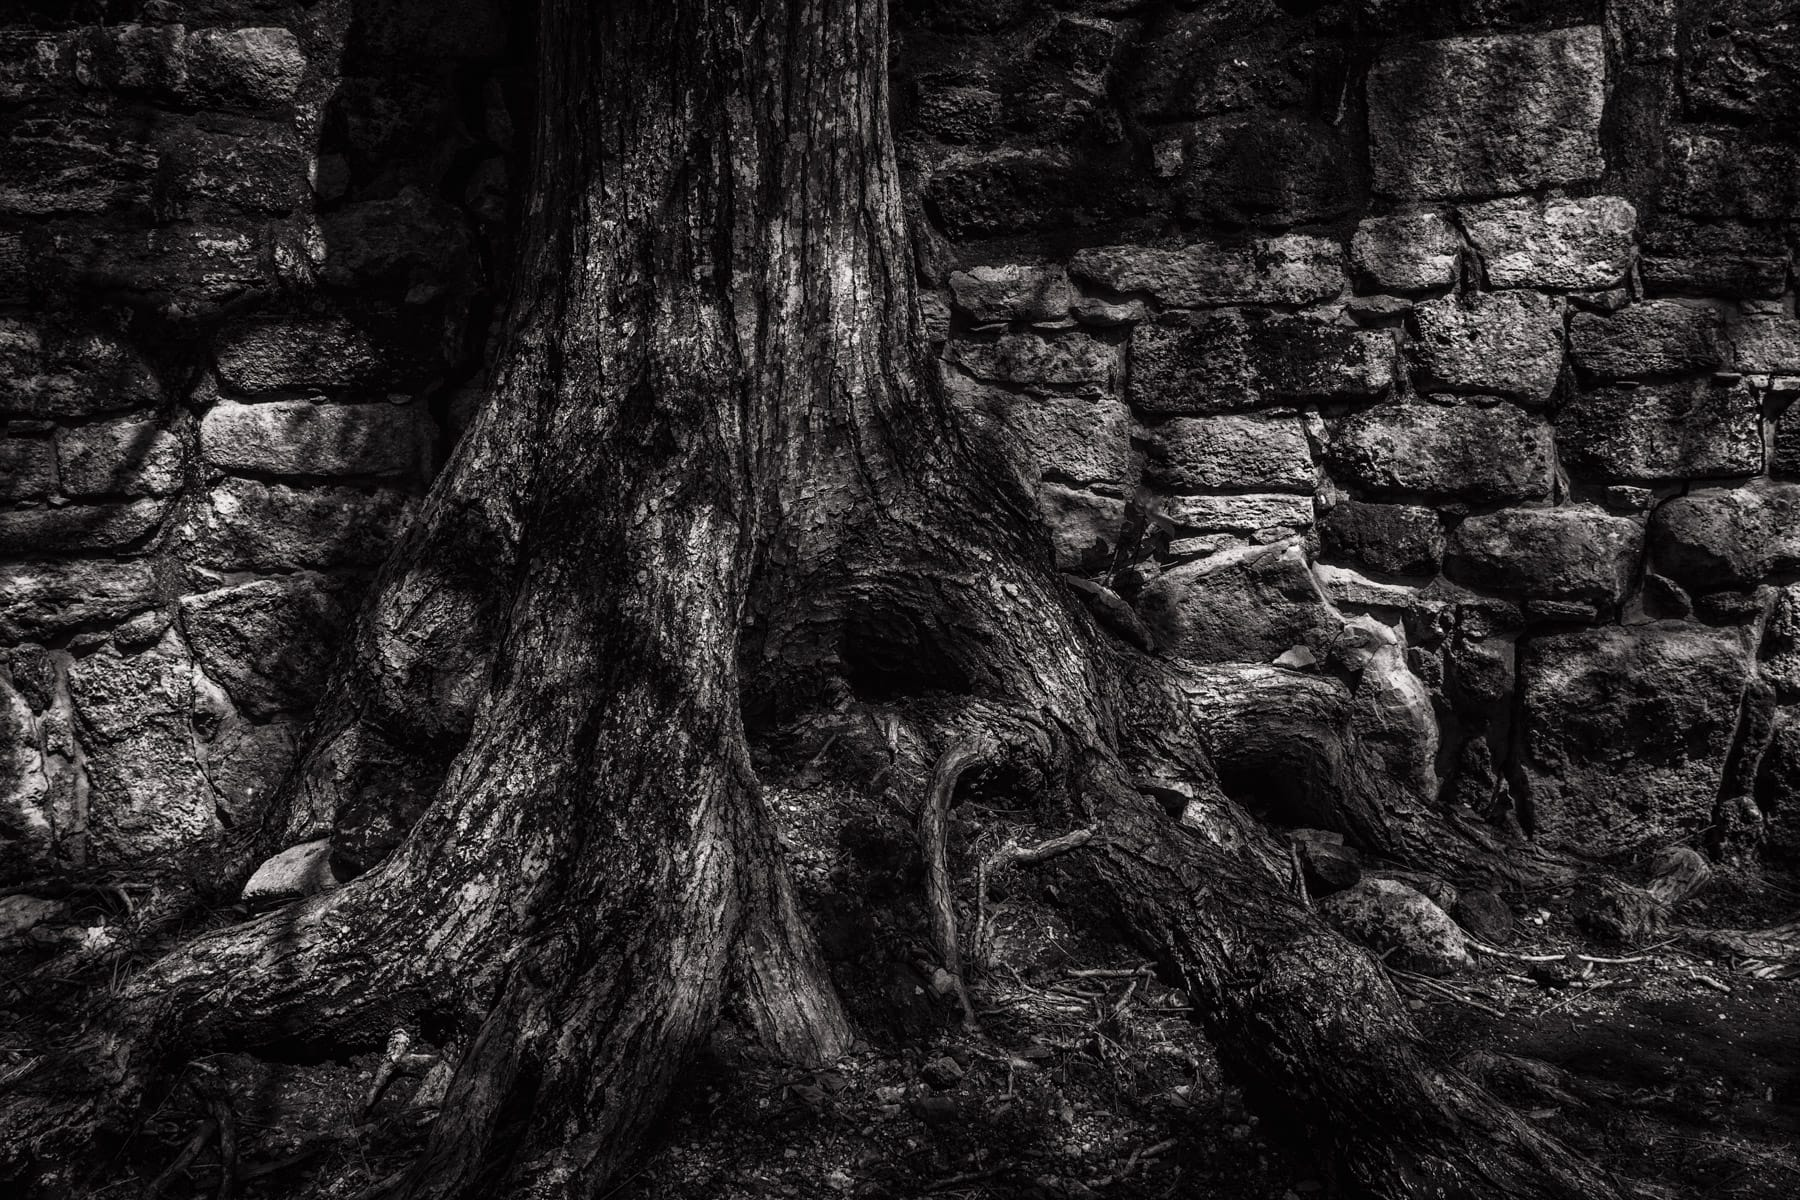 A tree grows amongst the Mayan ruins at San Gervasio, Cozumel, Mexico.